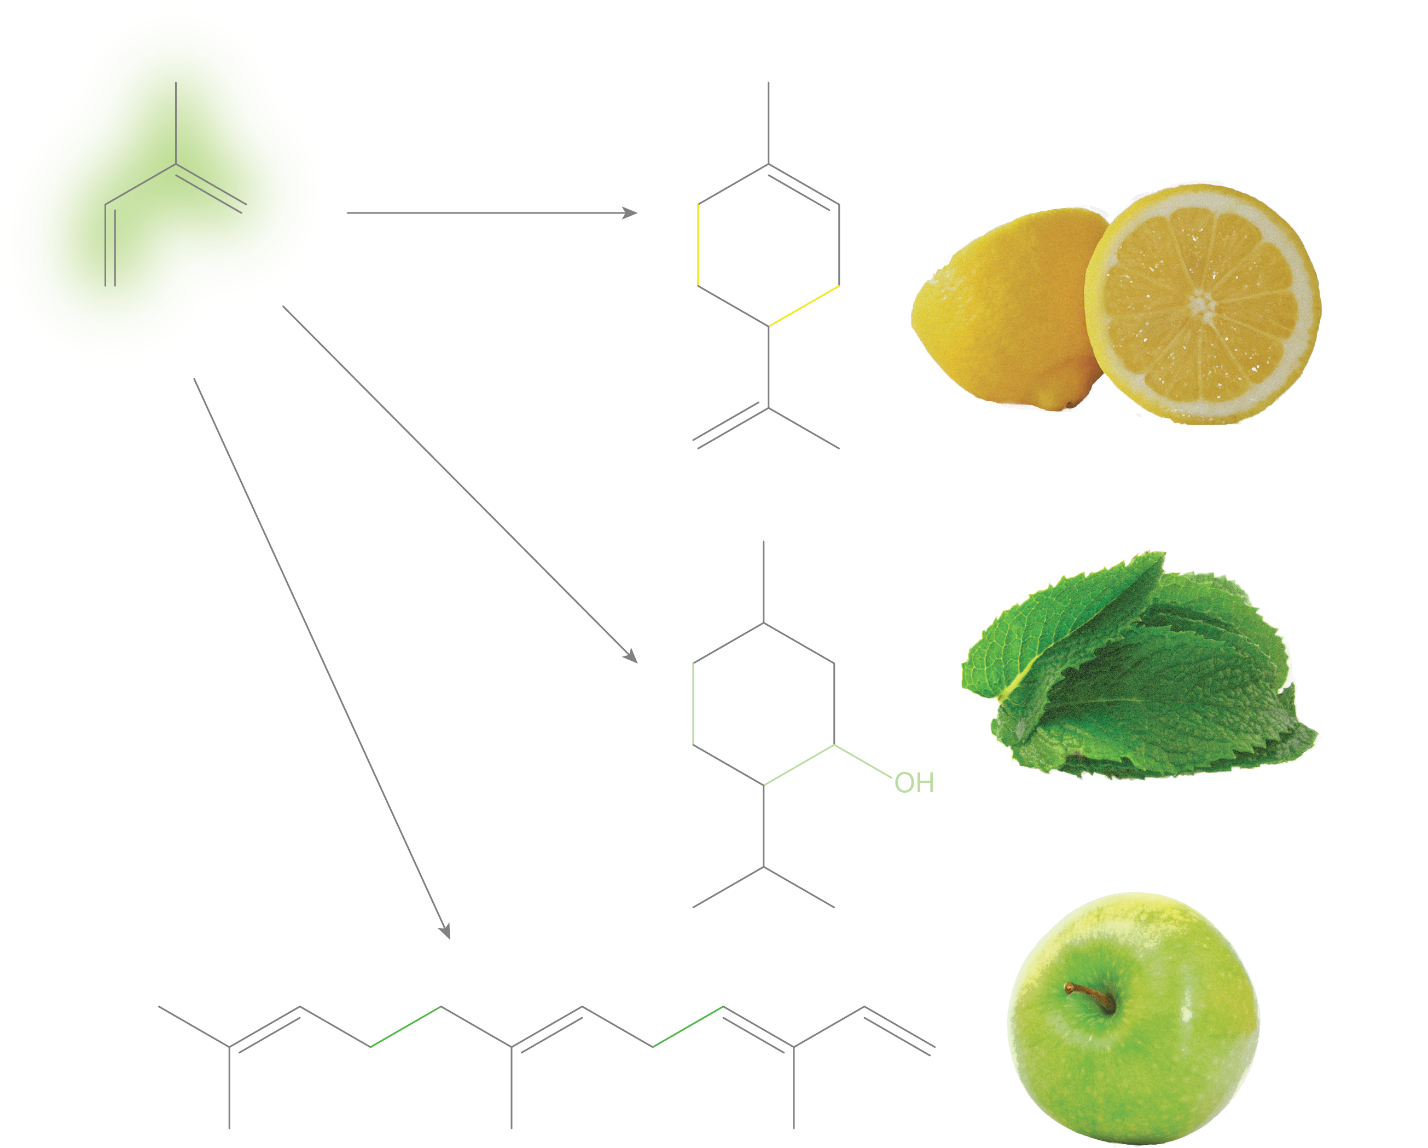 Plants can make isoprene (top left) into a huge variety of pleasantly-scented compounds including limonene (top right), menthol (middle), and farnesene (bottom). Produced by the author using images by   Abhijit Tembhekar/Wikimedia Commons (CC-BY-2.0)  ,   Darya Pino/Flickr (CC-BY-2.0)   and   Pixabay (CC0)  .